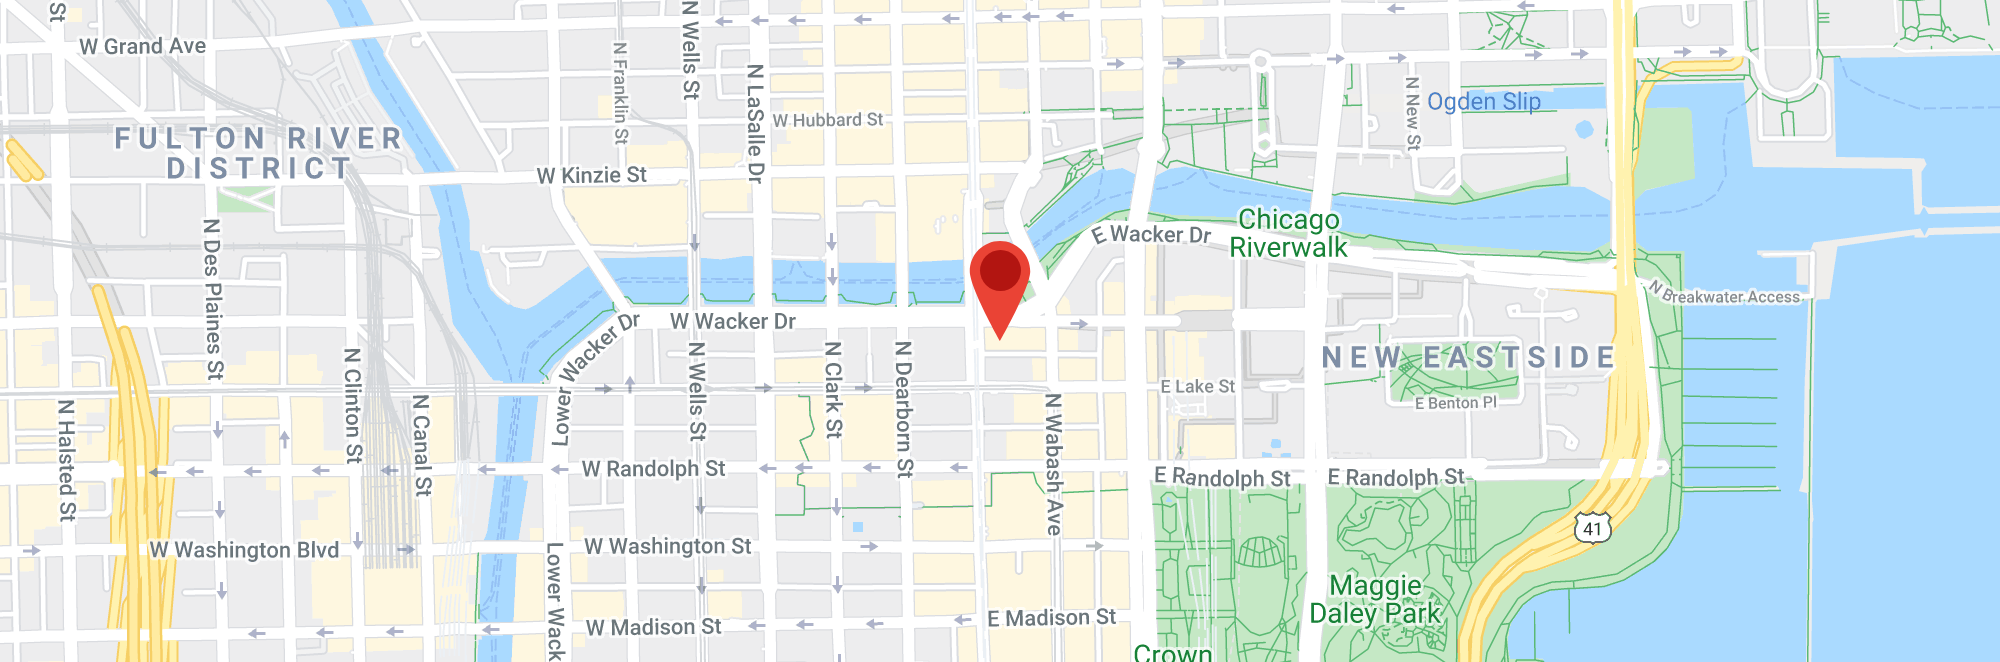 Map of Chicago (low-res)